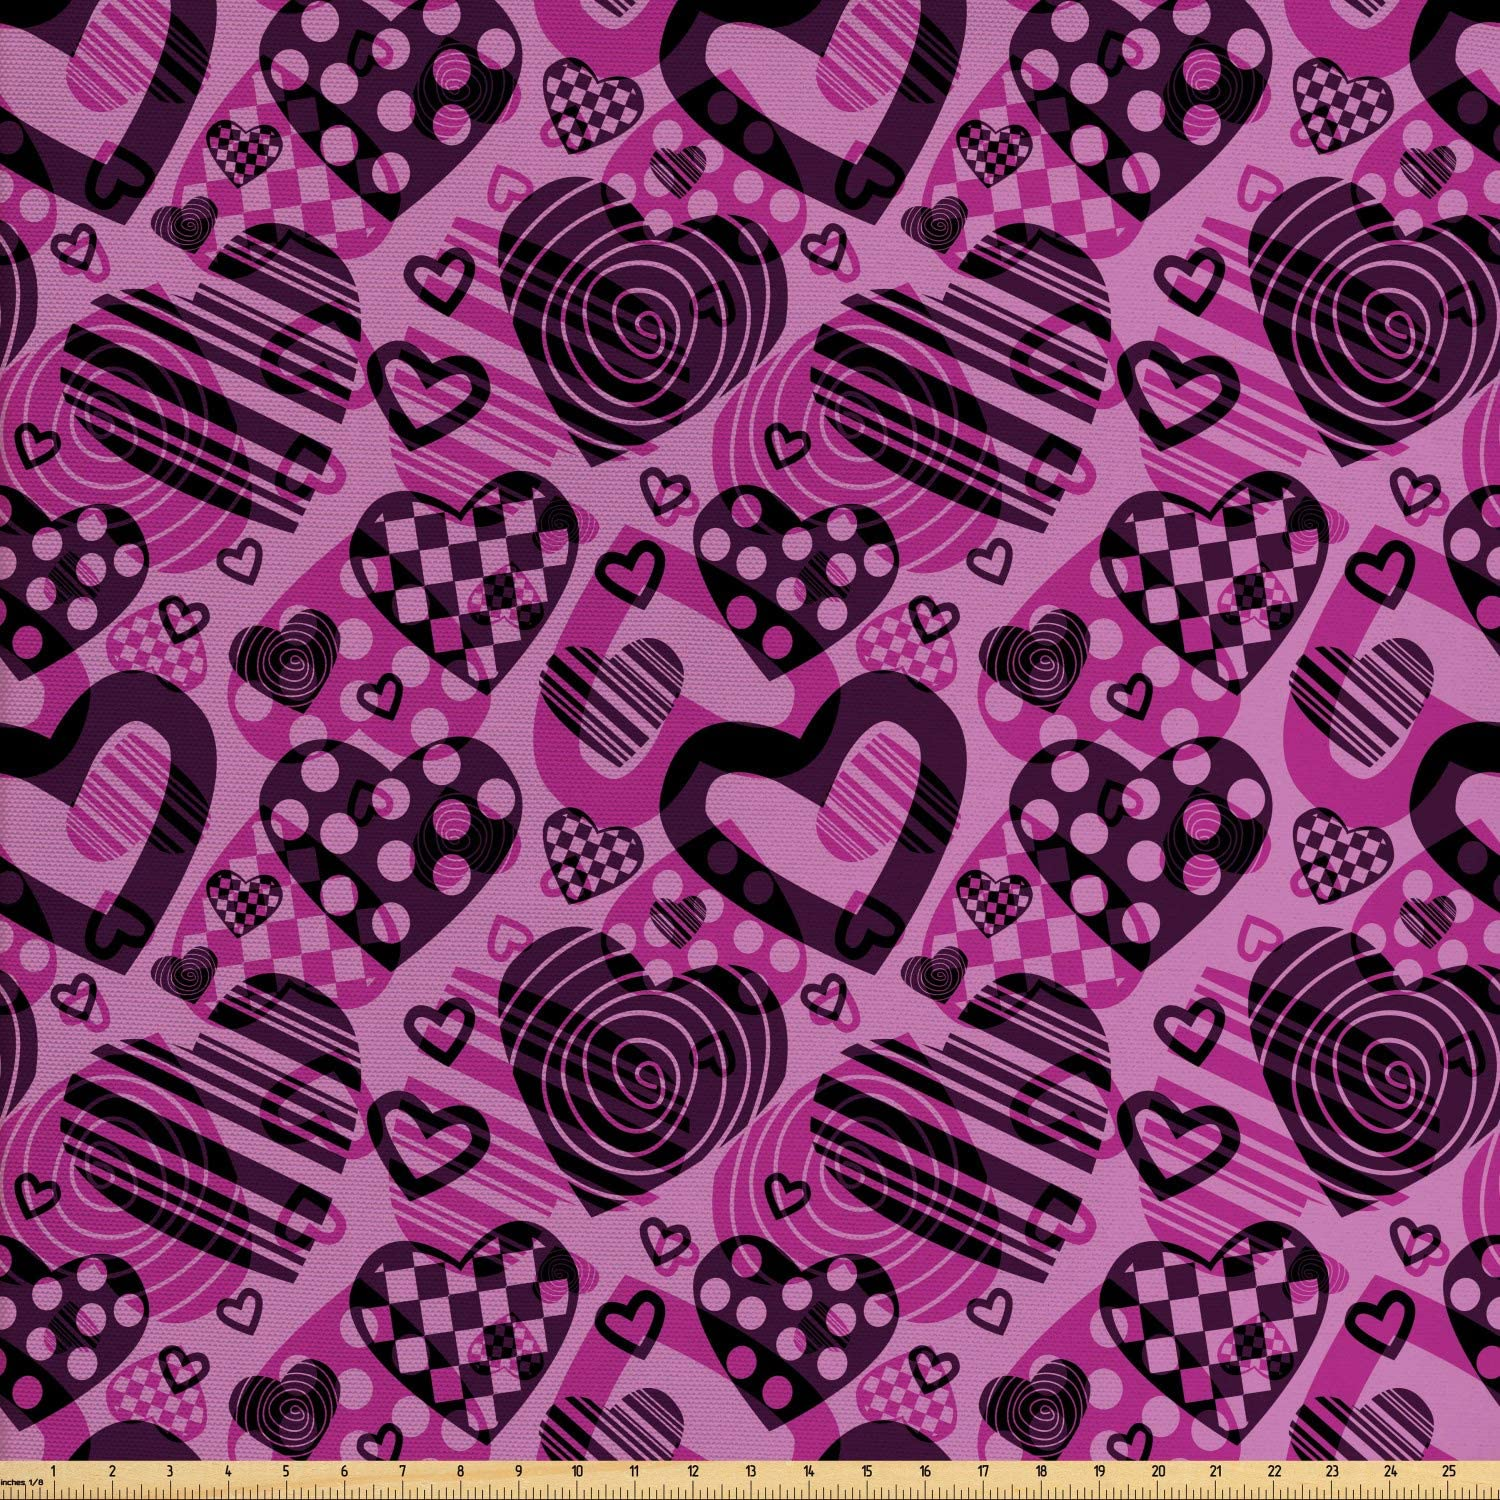 Lunarable Valentines Day Fabric by The Yard, Heart Shapes in Different Forms Circle Plaid and Spiral Style, Decorative Fabric for Upholstery and Home Accents, 3 Yards, Charcoal Grey and Magenta